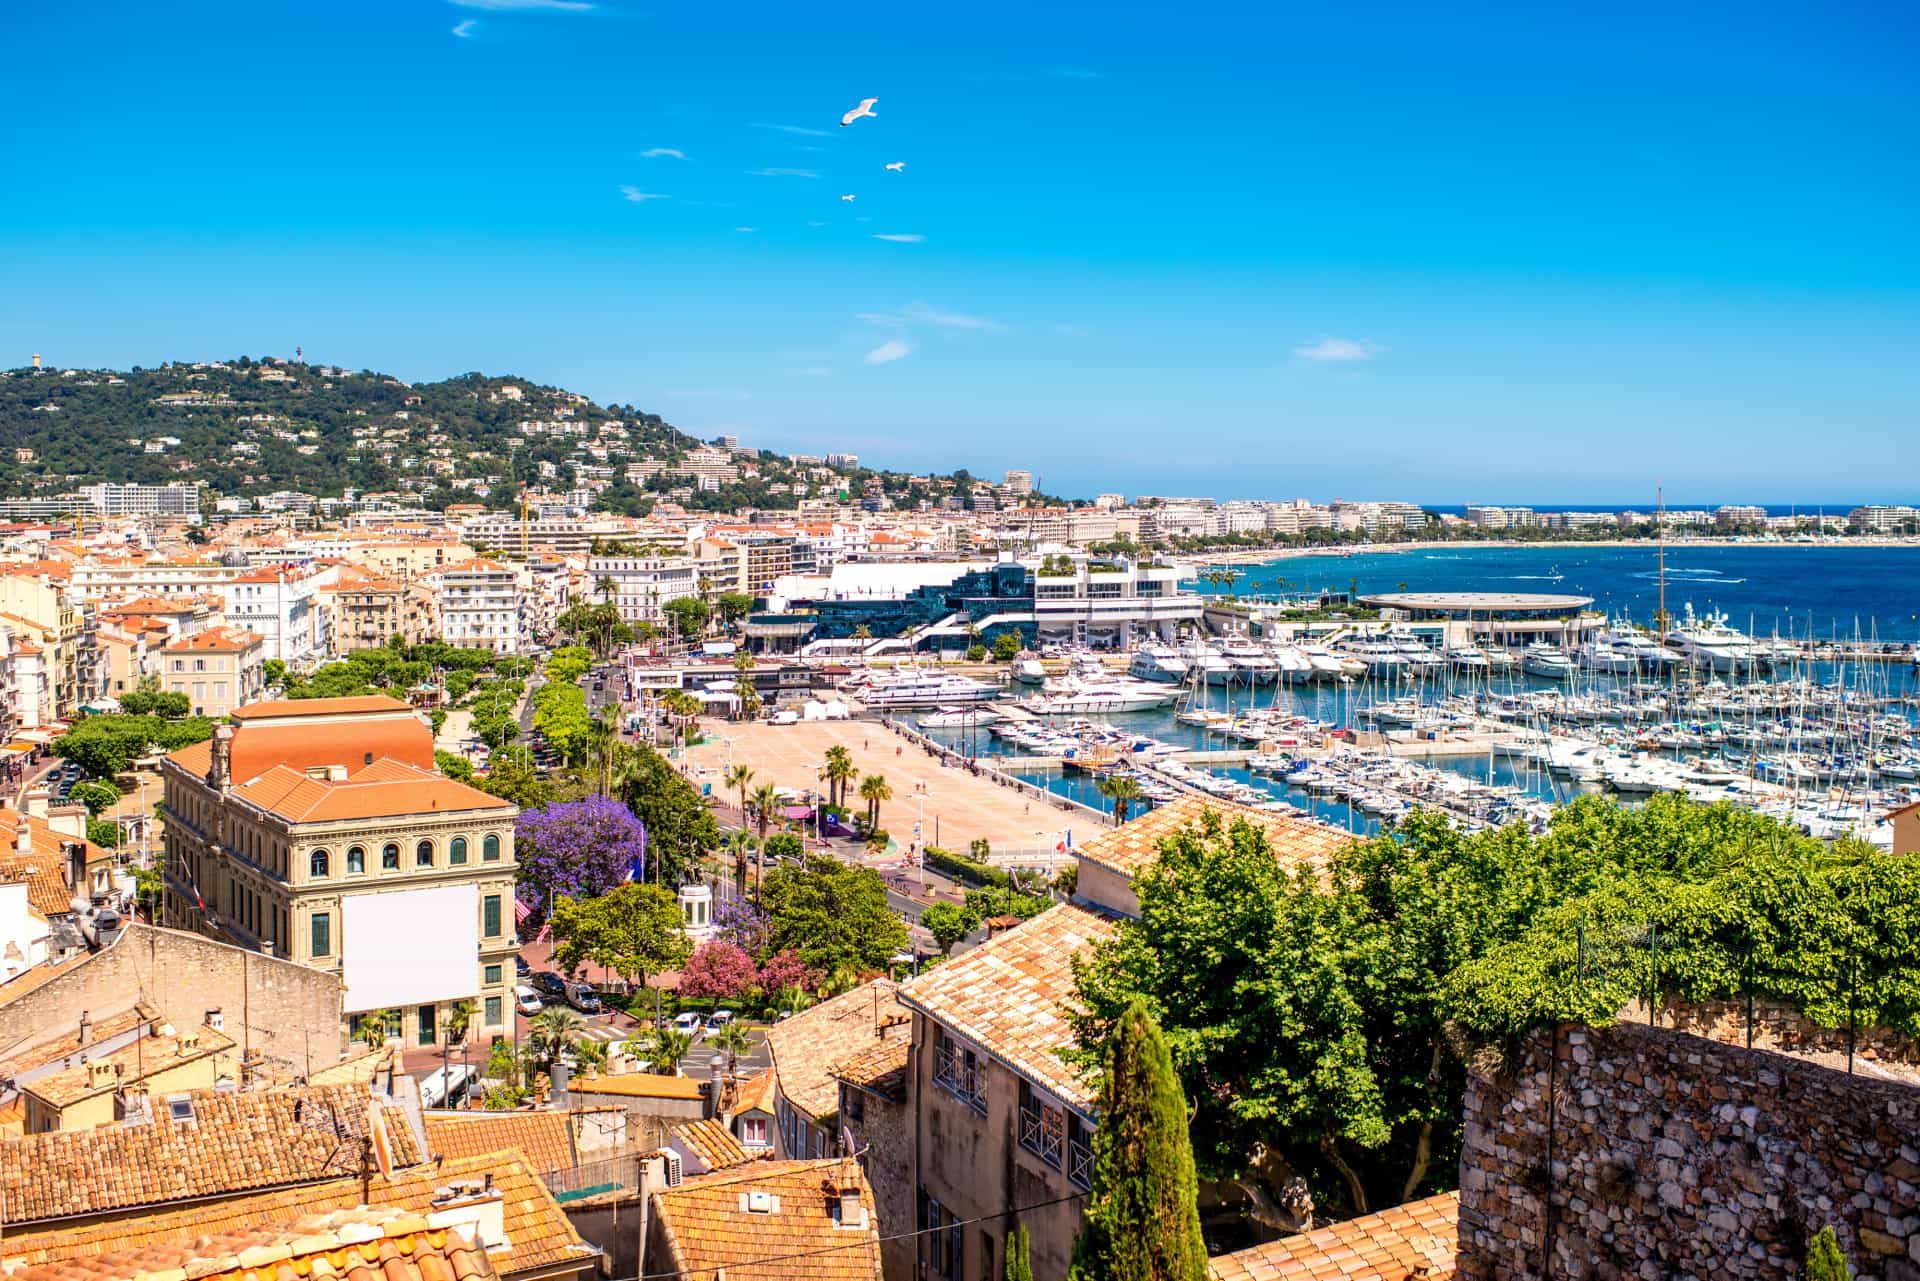 Cannes: Going beyond the famous film festival